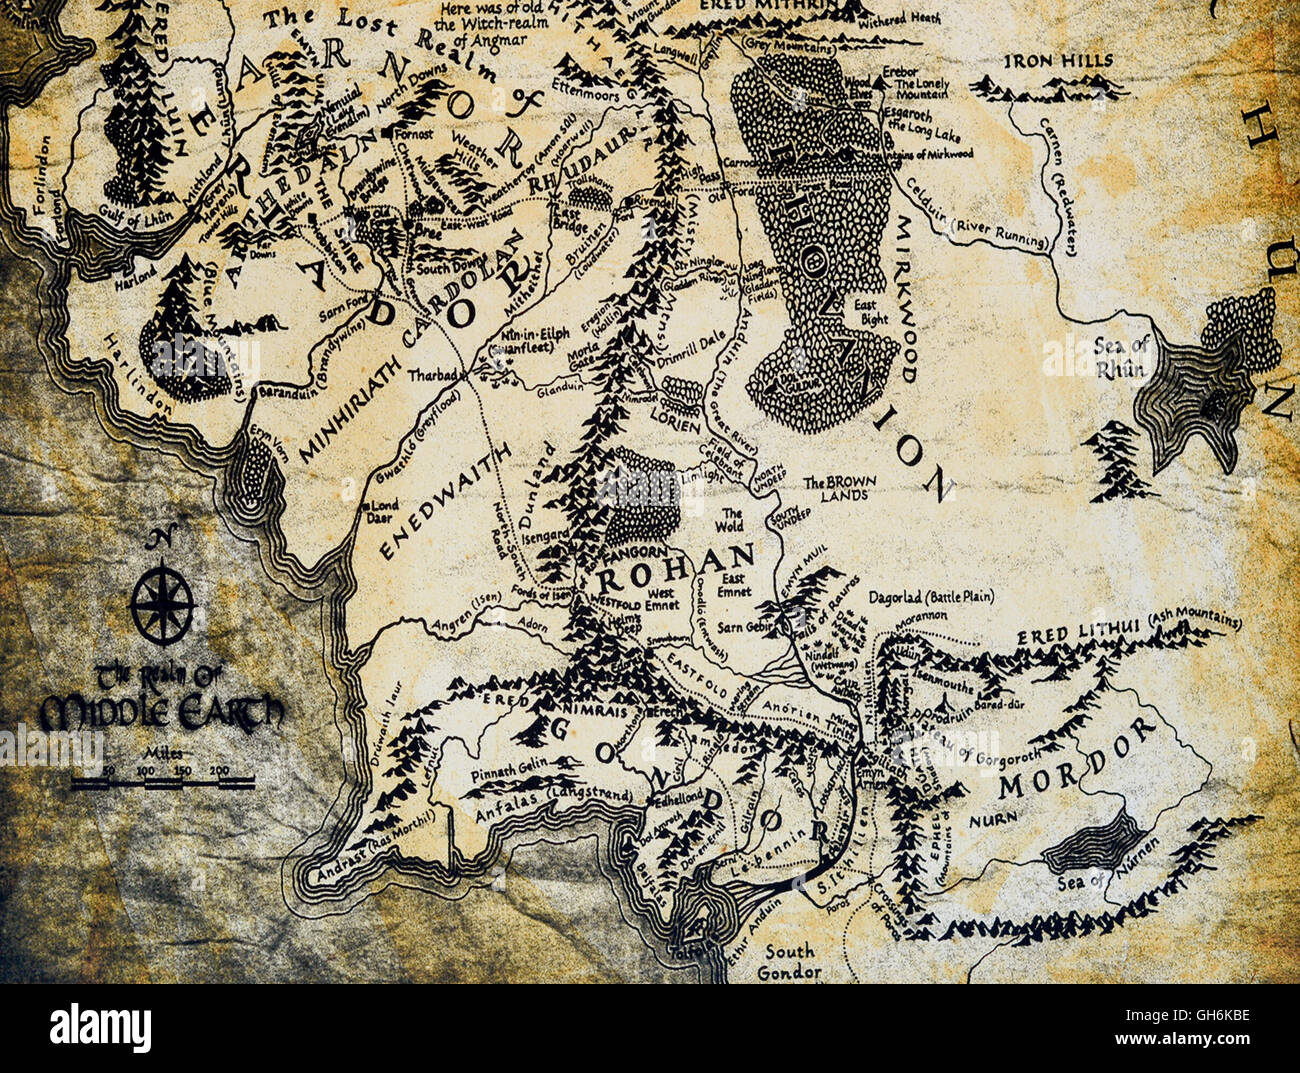 map of middle earth from the lord of the rings by jrr tolkien. map of middle earth from the lord of the rings by jrr tolkien